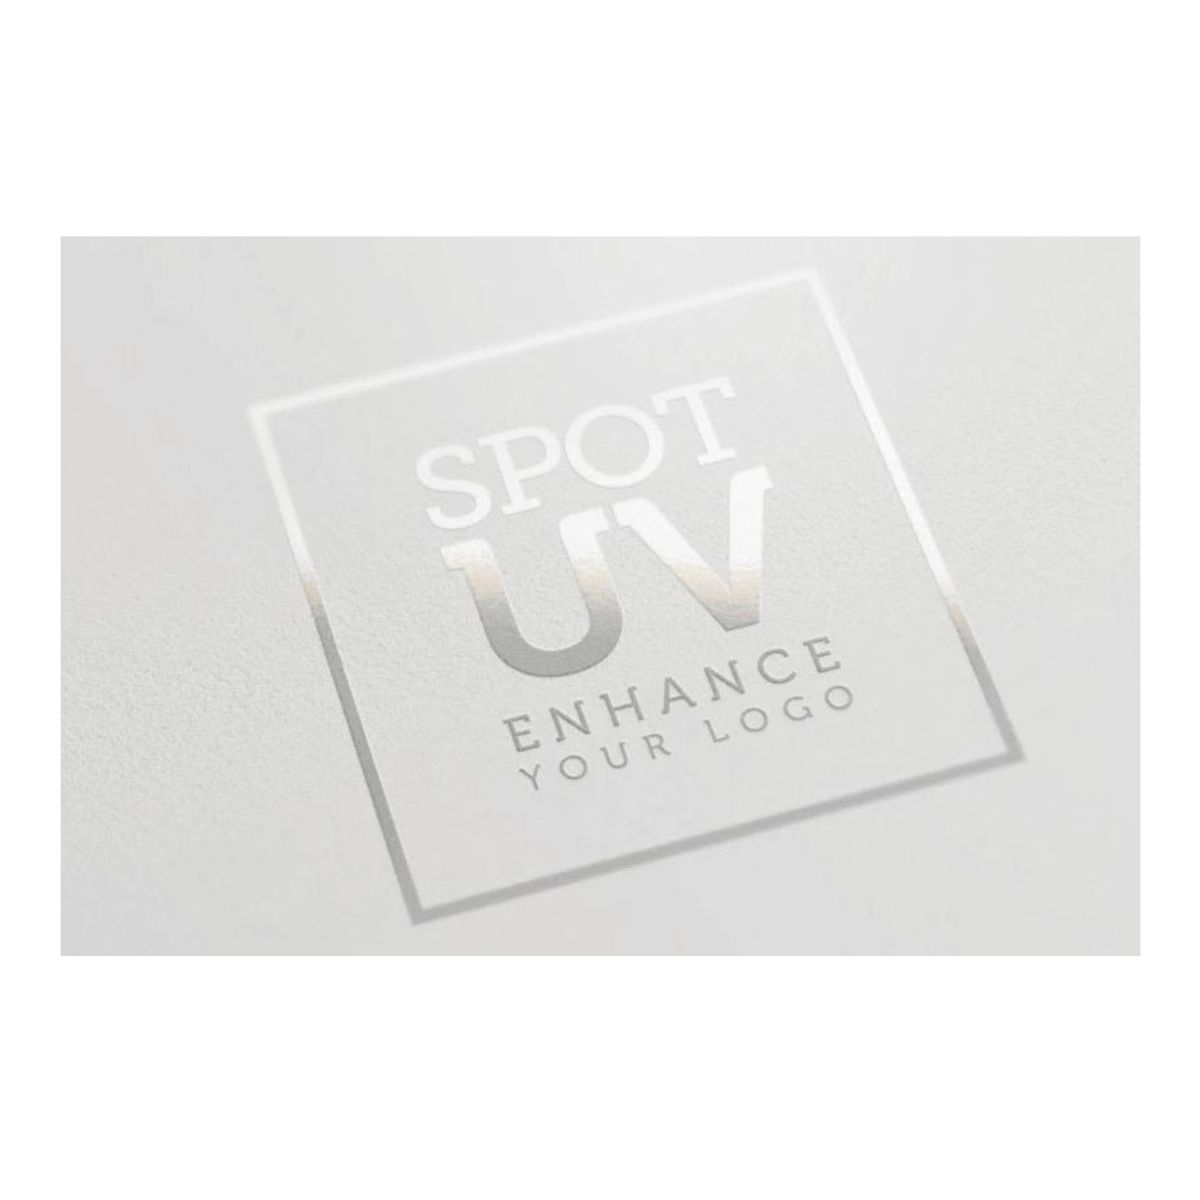 Velvet or Suede With Raised Spot UV Postcards-022118-1